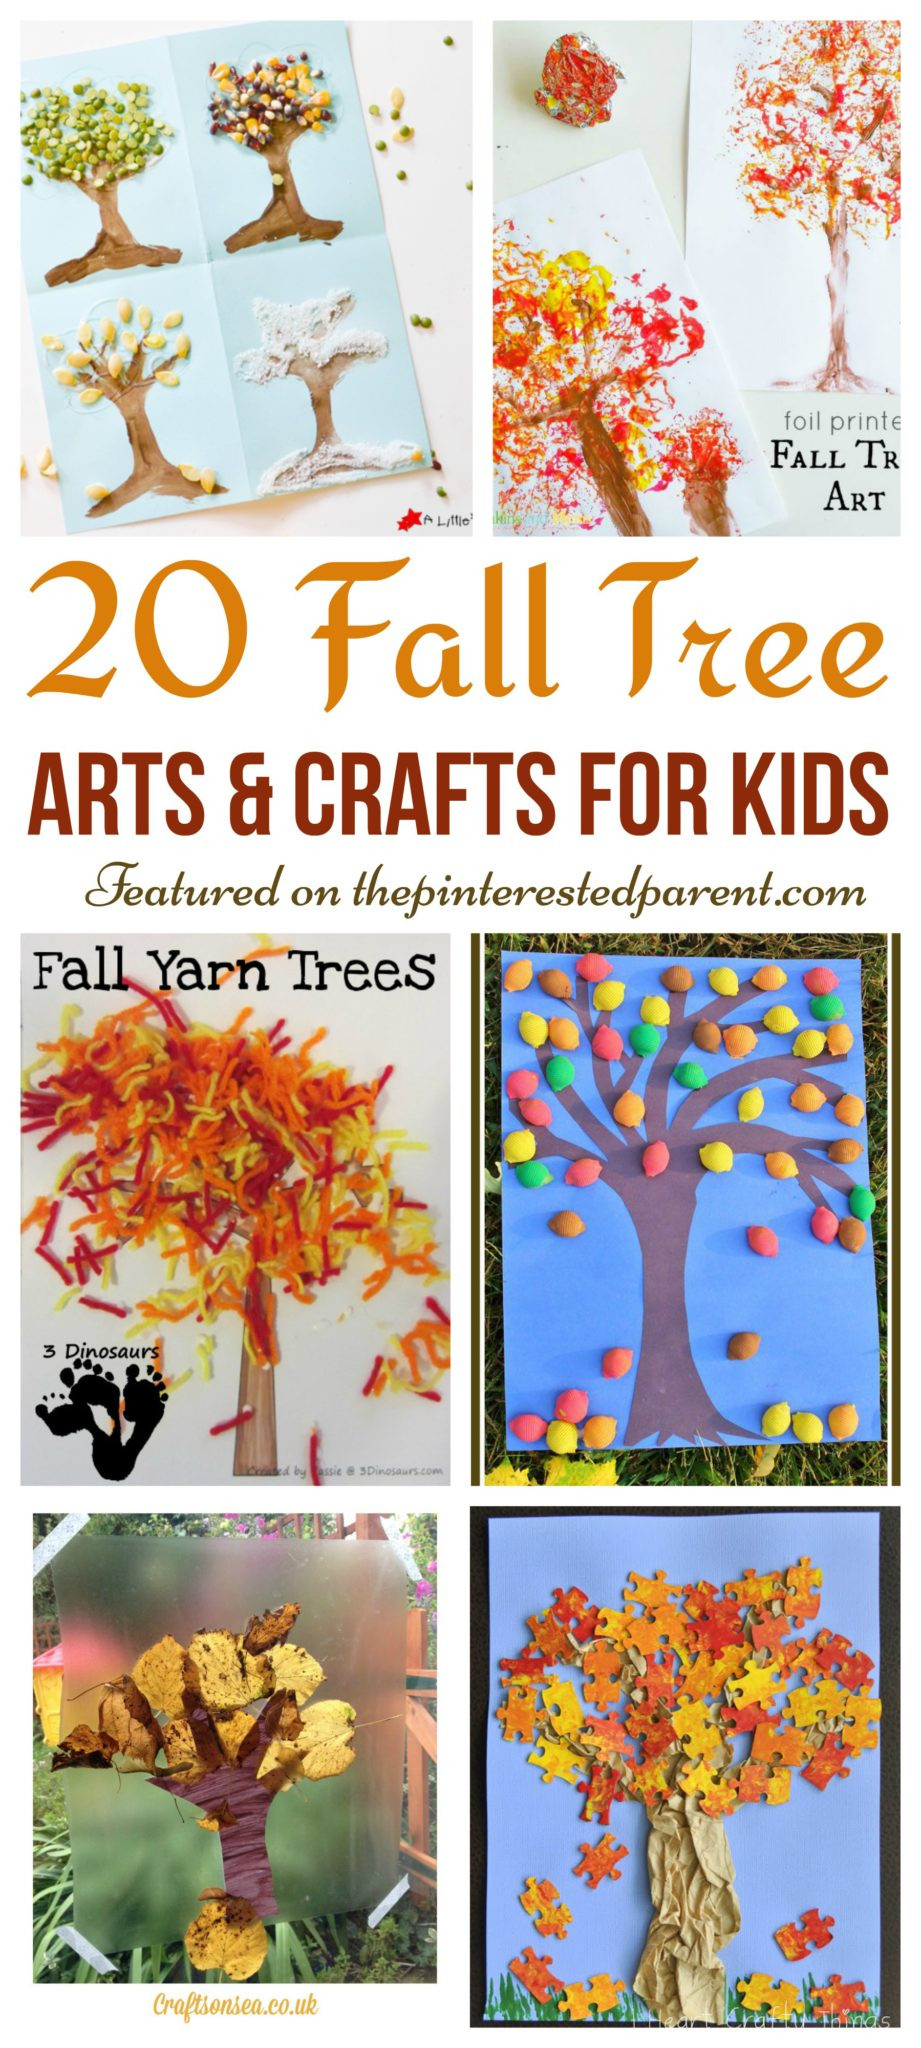 Arts And Crafts For Preschool  20 Fall Tree Arts & Crafts Ideas For Kids – The